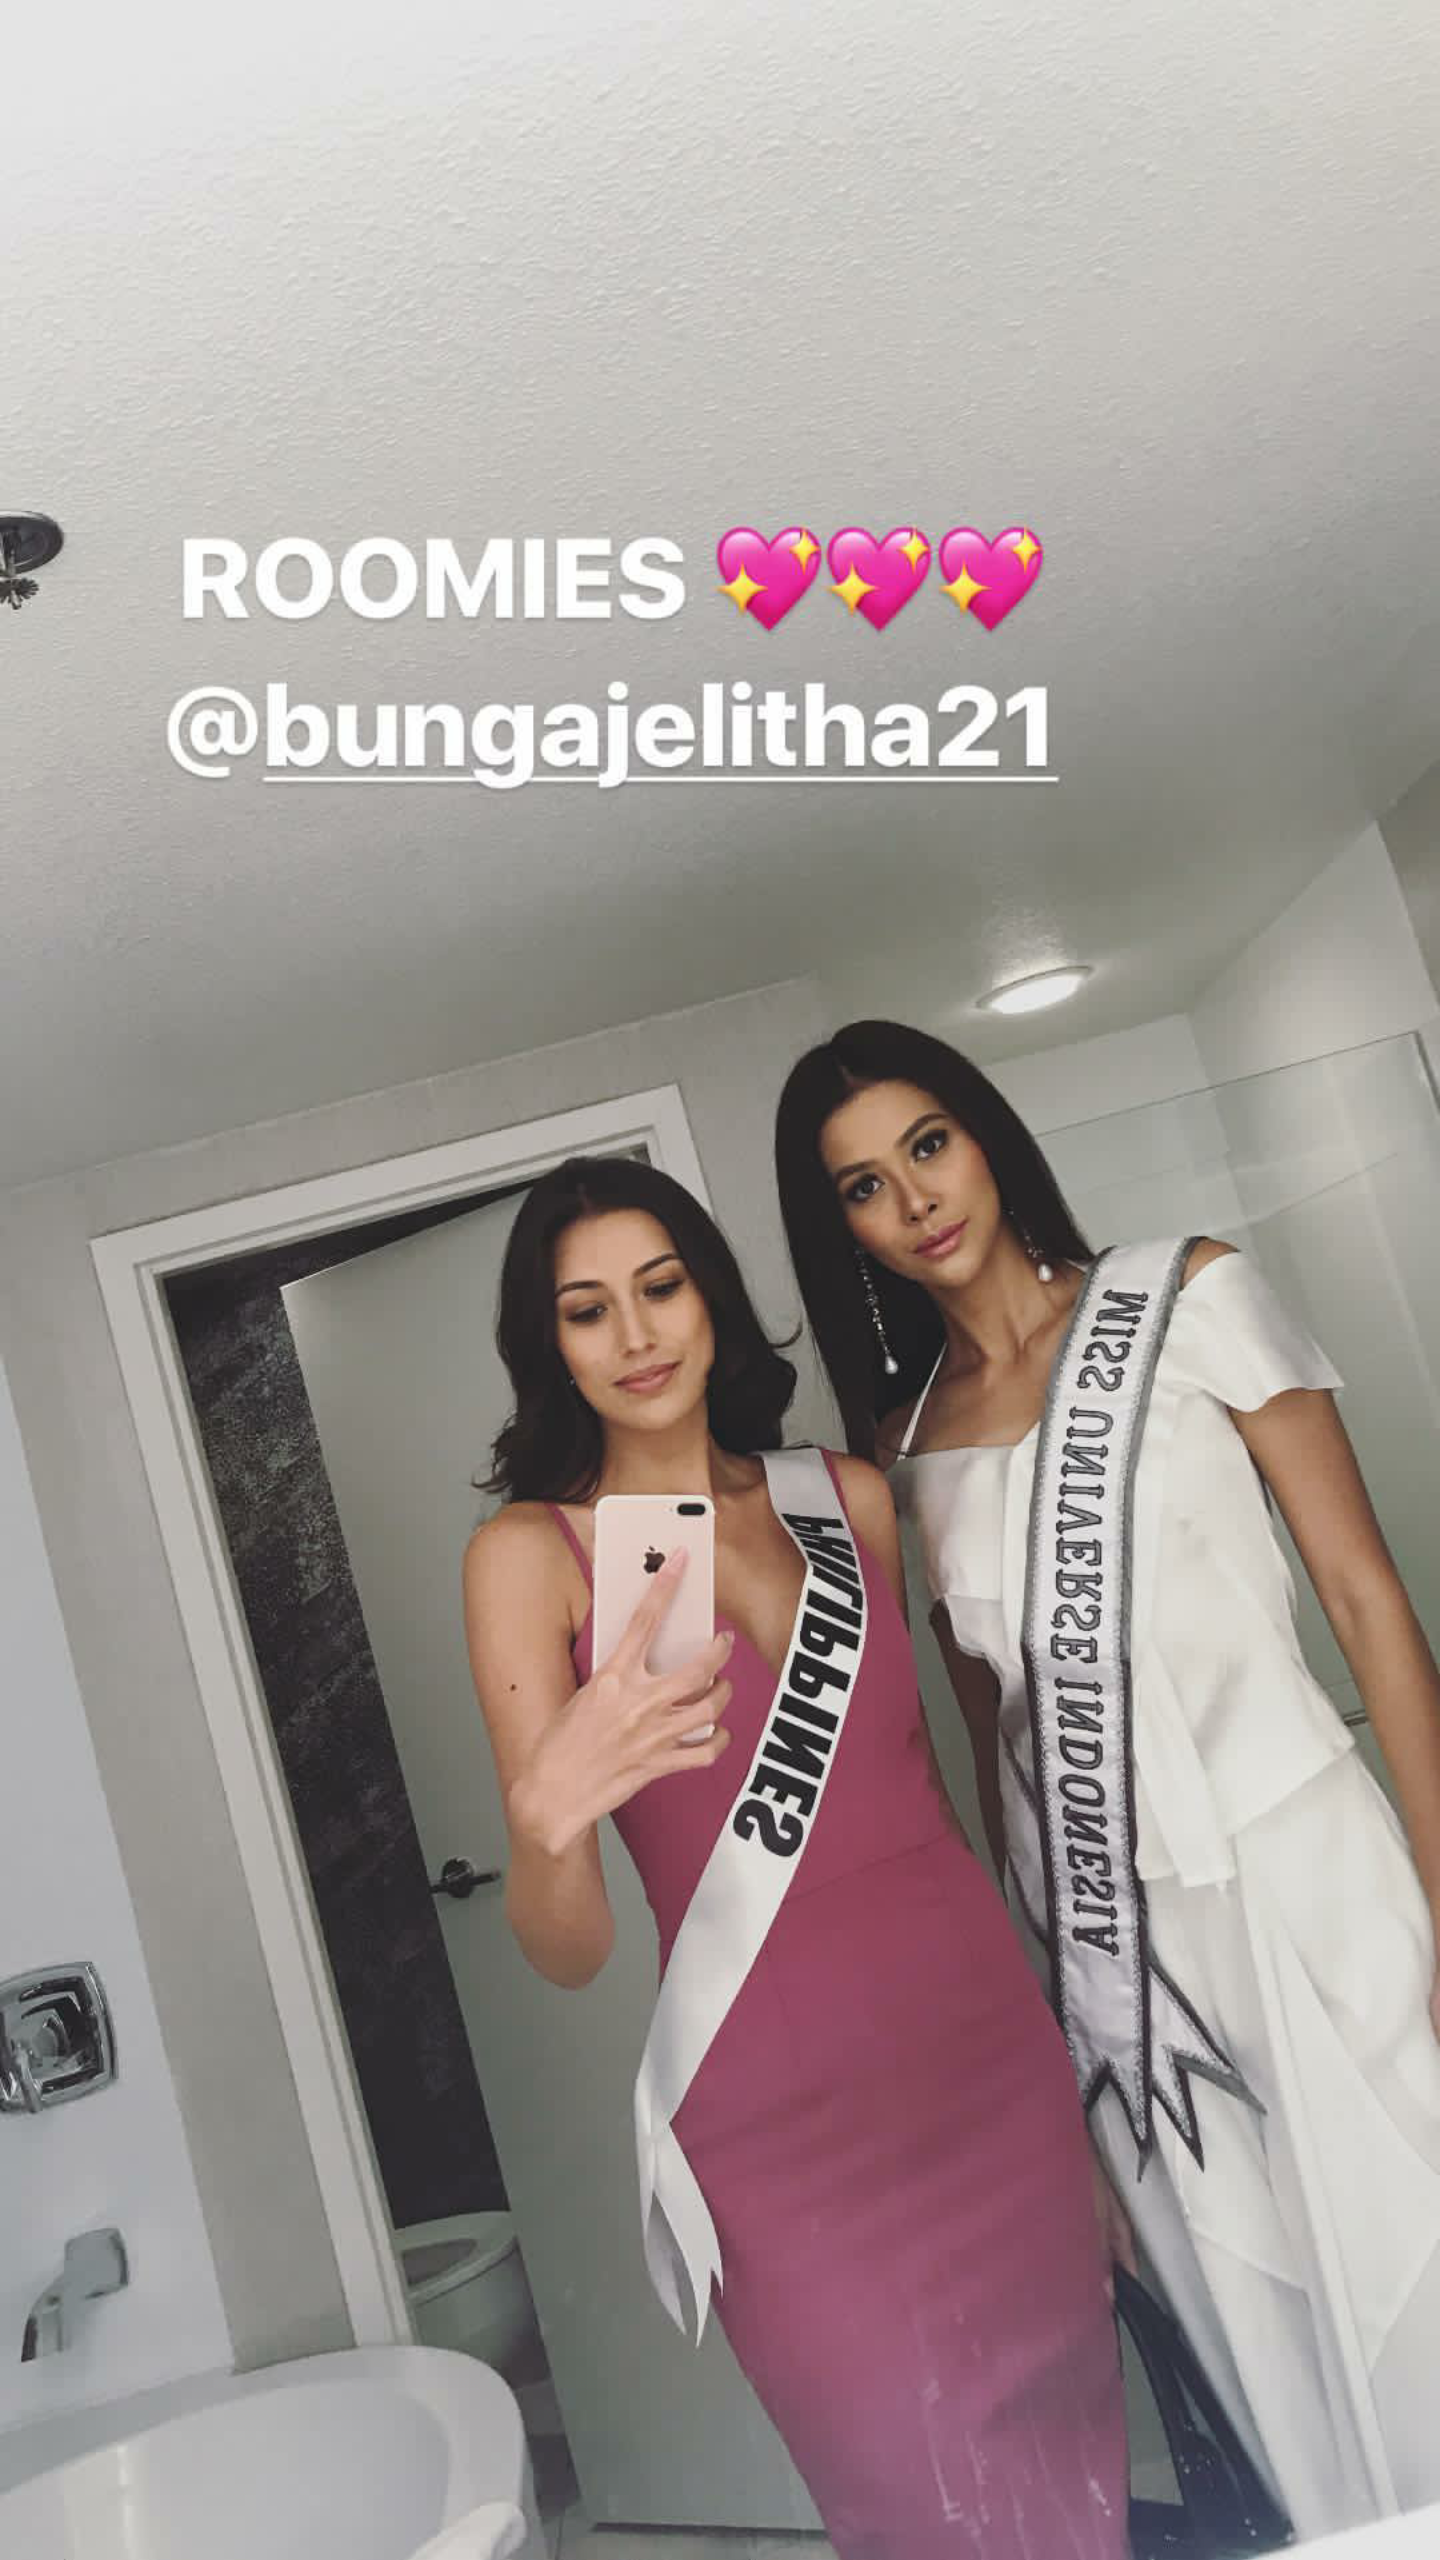 ROOMMATES. Rachel Peters and Indonesia's Bunga Jelitha are roommates in Miss Universe 2017. Screengrab from Instagram stories/@rachelpetersx